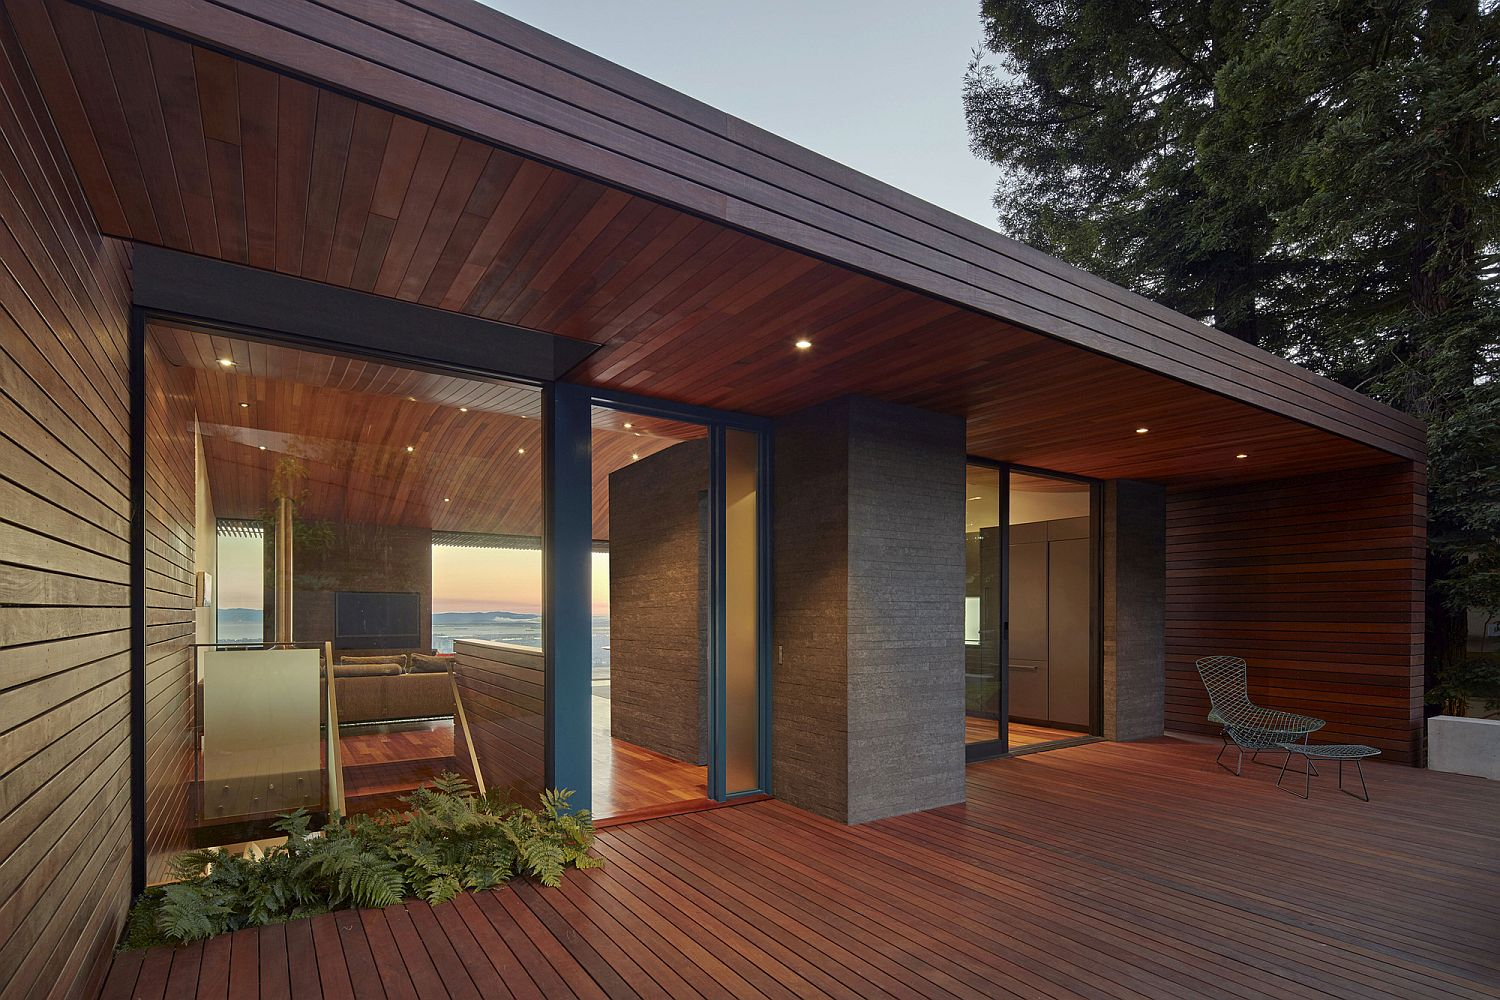 Beautiful-wooden-deck-and-ceiling-give-the-modern-home-plenty-of-warmth-visually